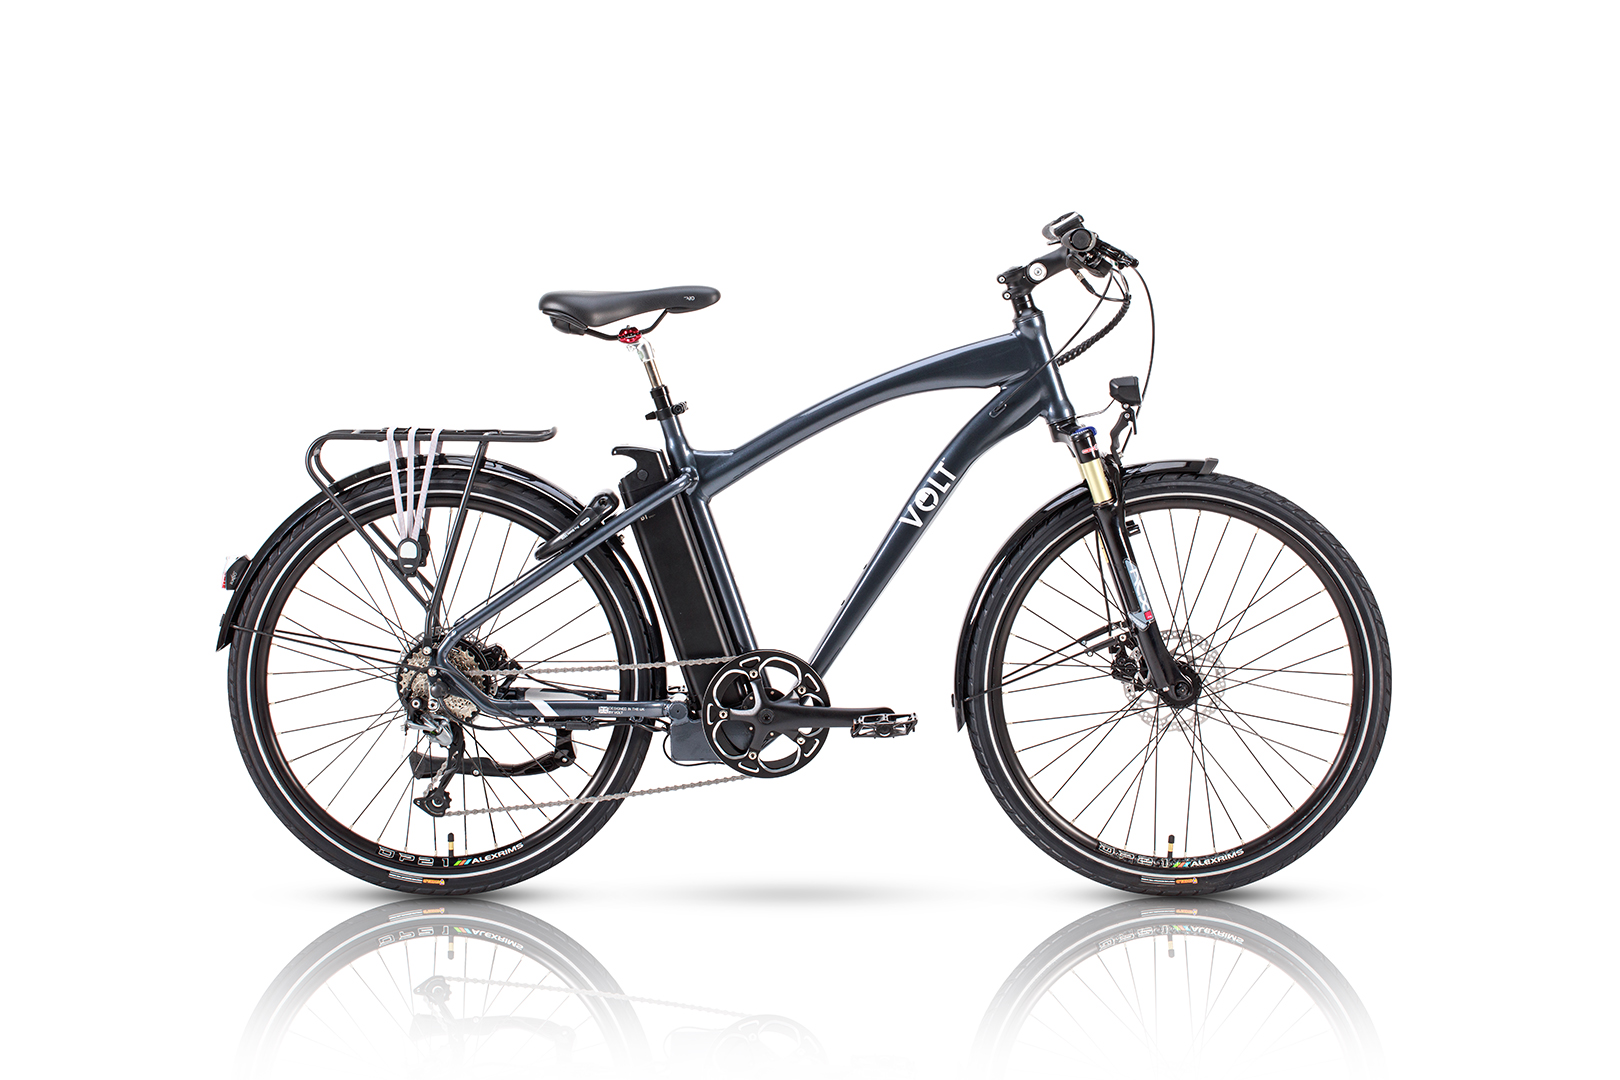 VOLT™ Pulse Hybrid E-bike studio photograph side on with a white background